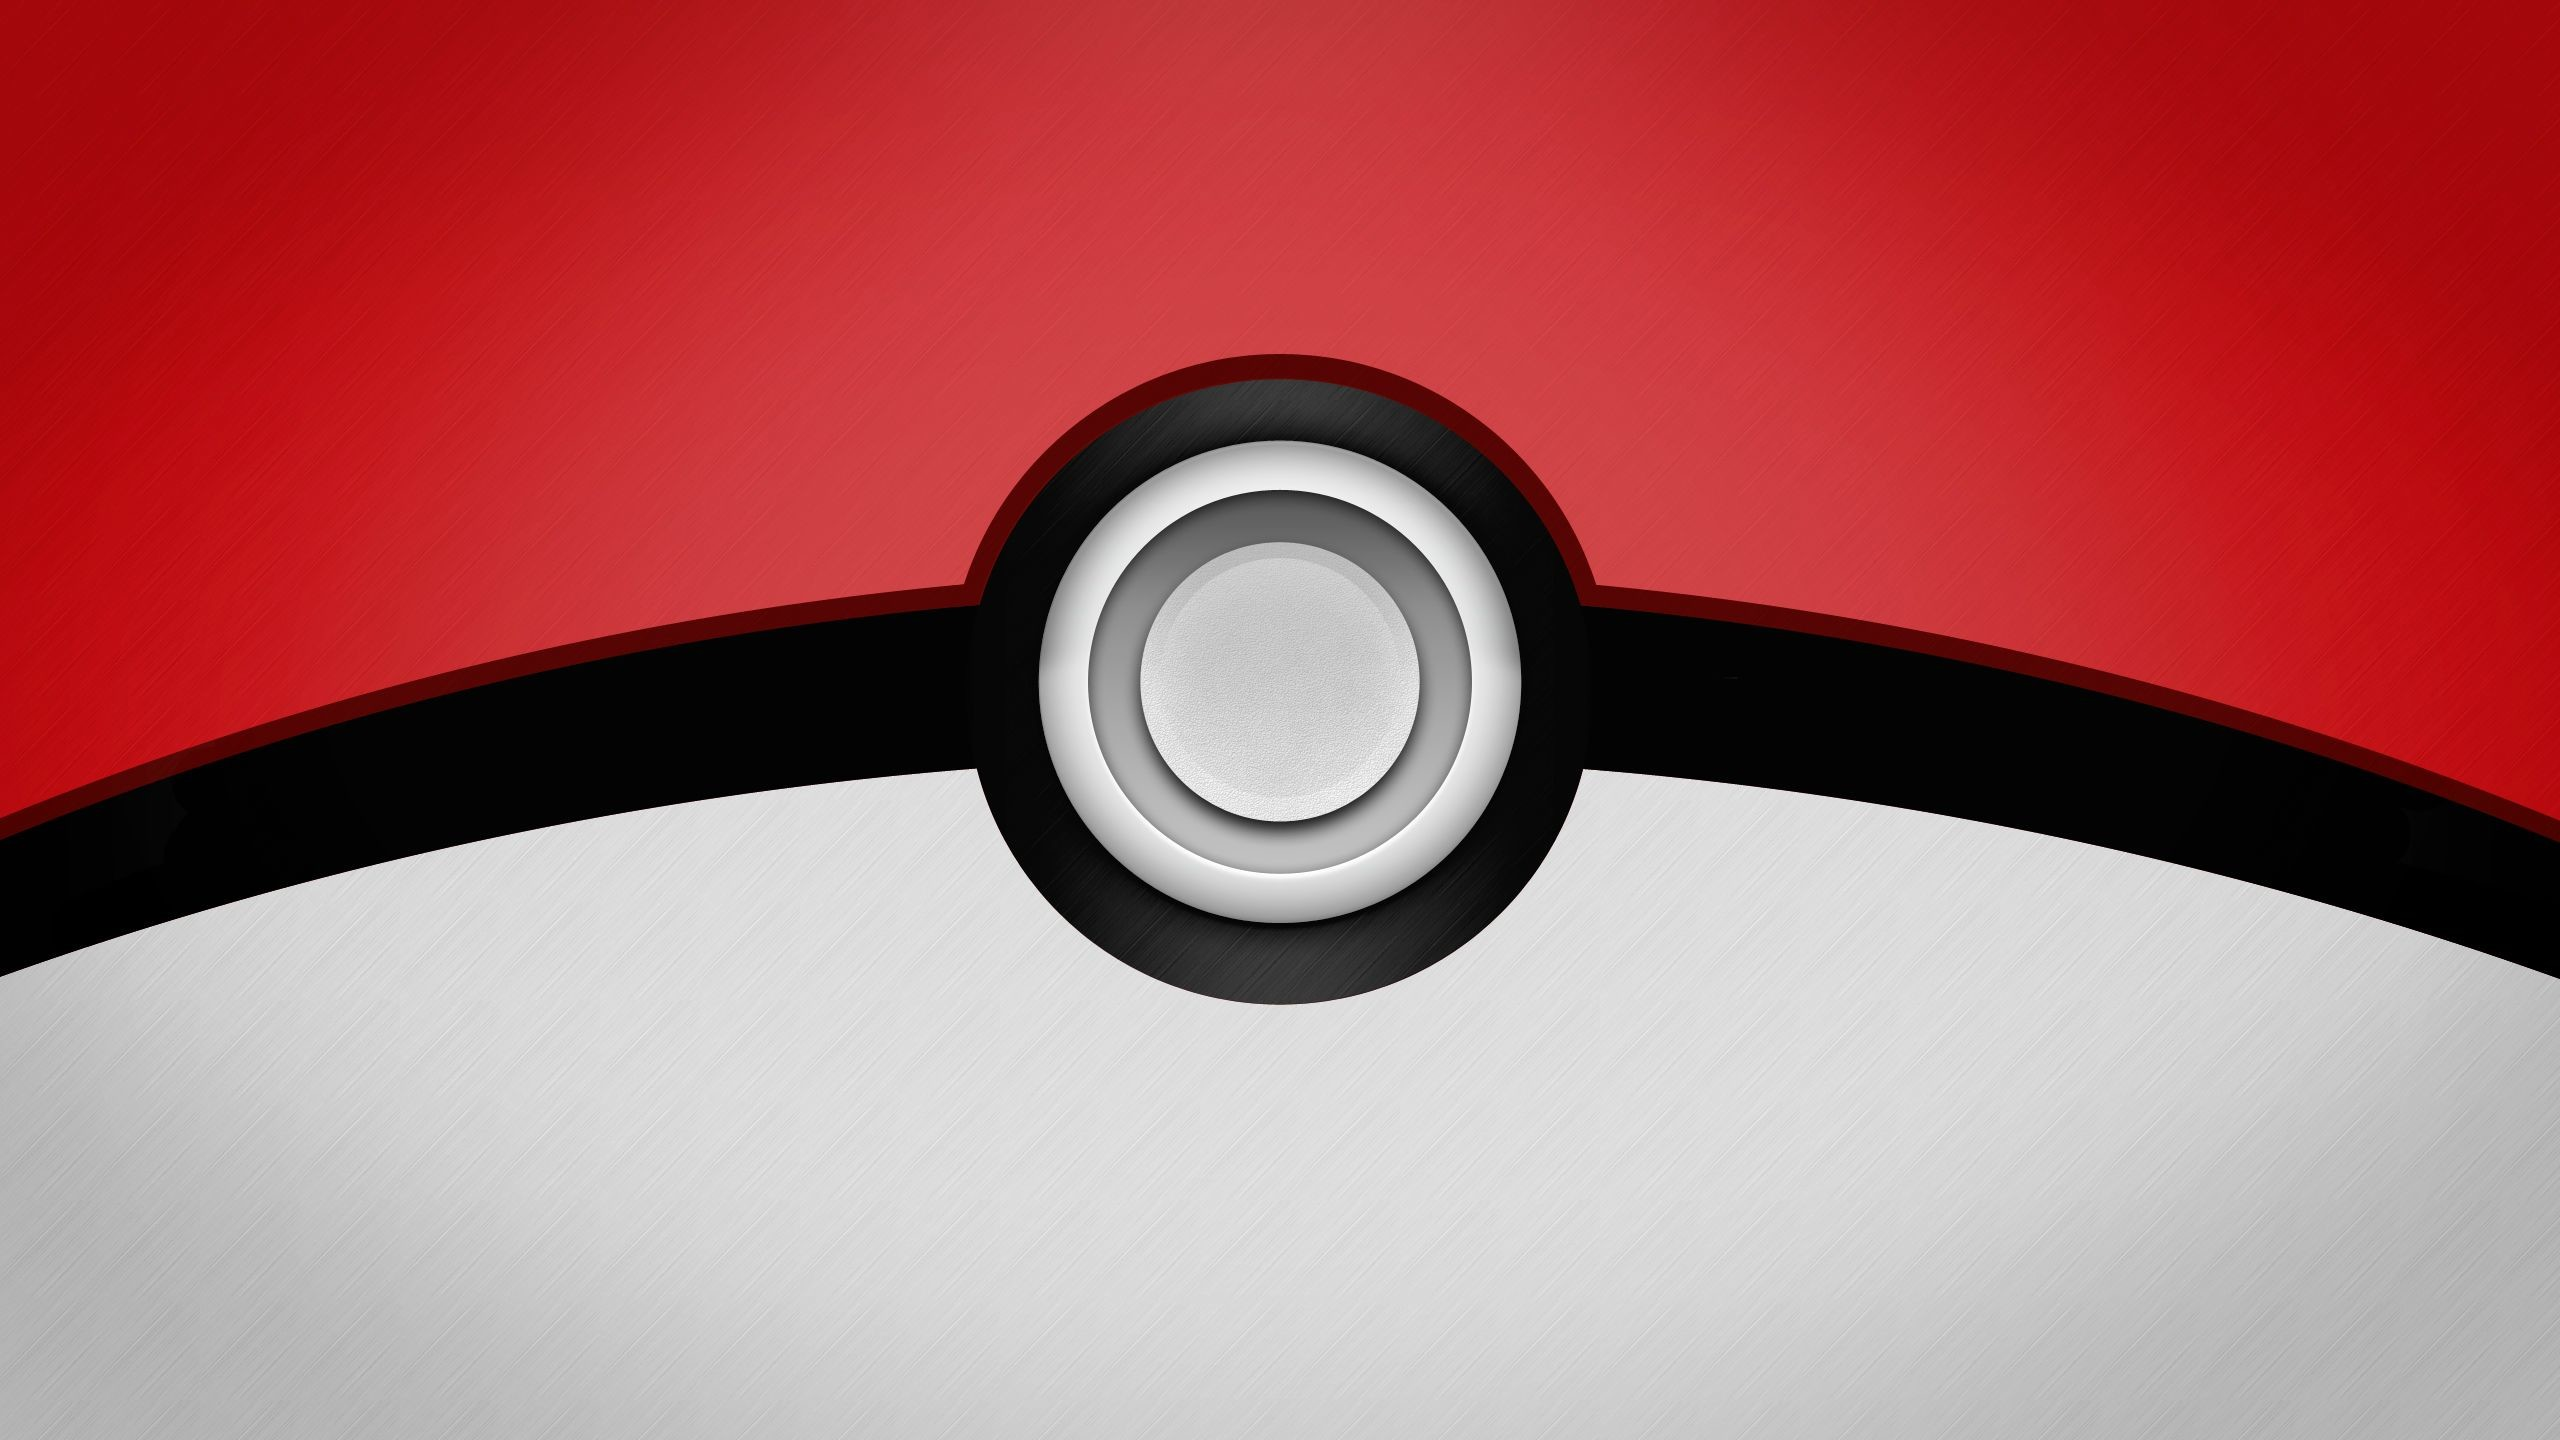 Made this pokeball wallpaper available to download. (X-post from /r/gaming)  …